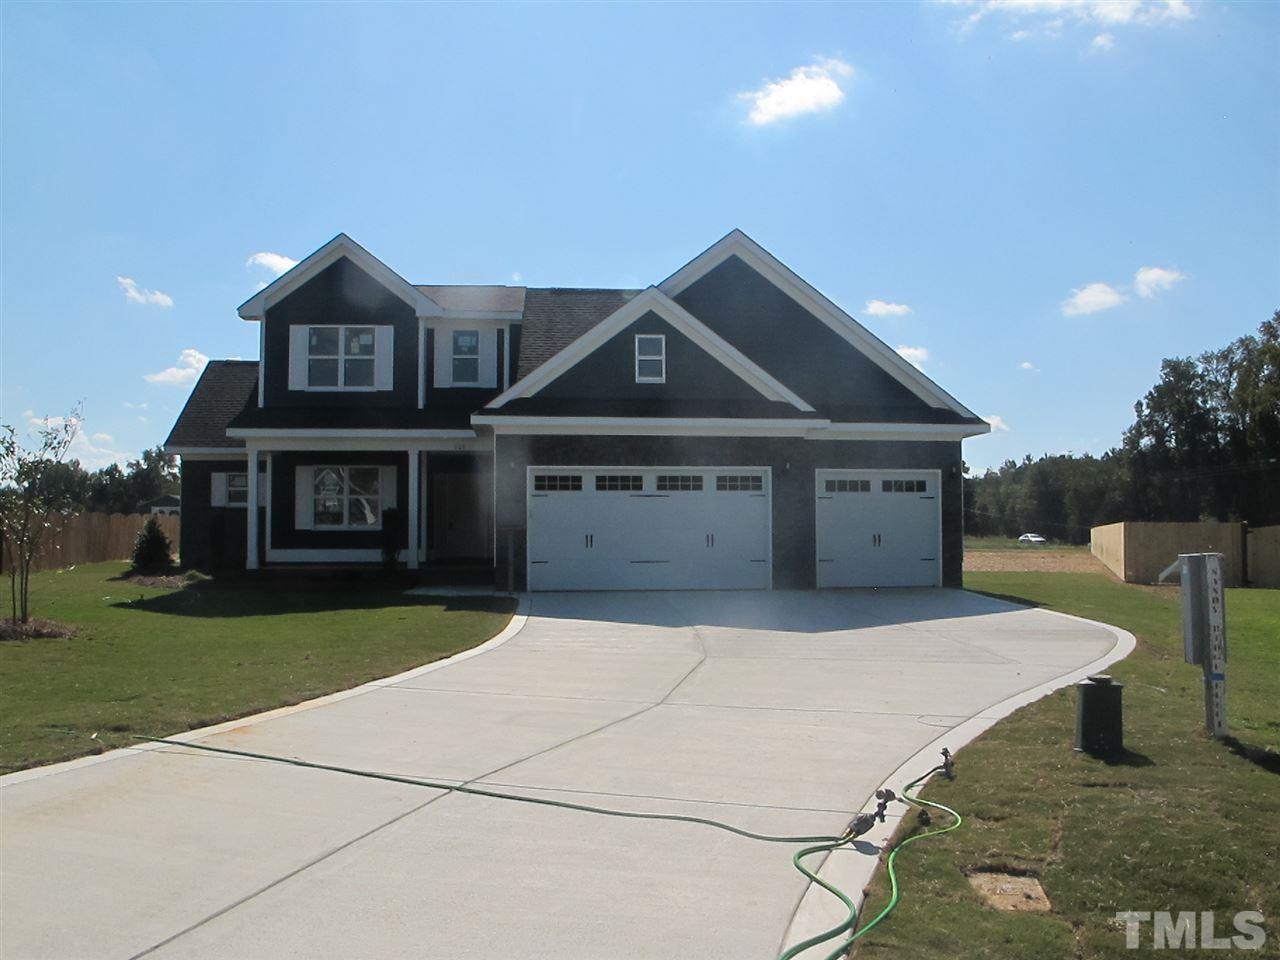 103 Trophy Ridge Fuquay Varina, NC 27526 2215693